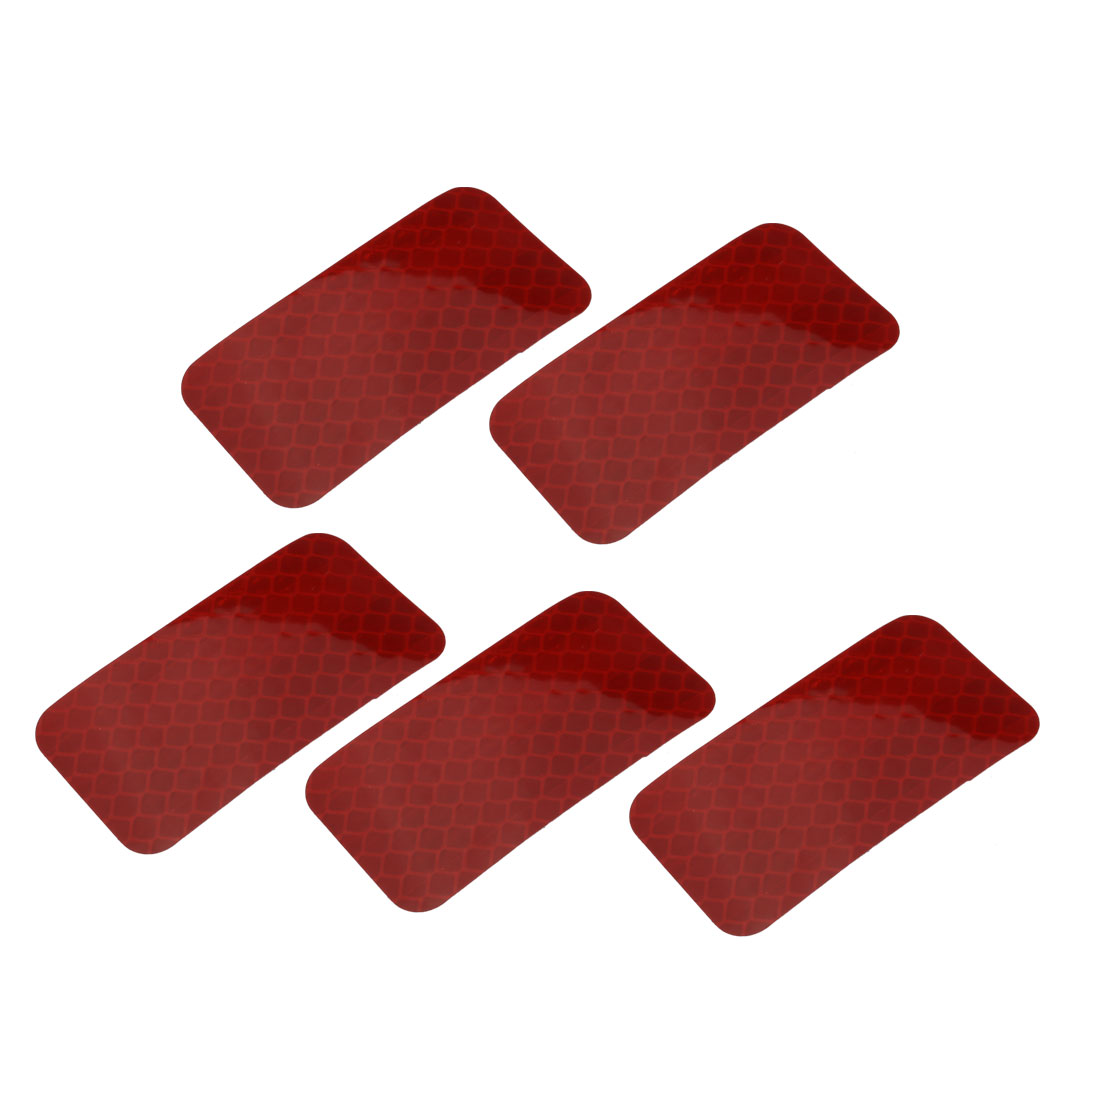 5pcs Honeycomb Reflective Warning Tape Film Sticker Red 30mm x 60mm